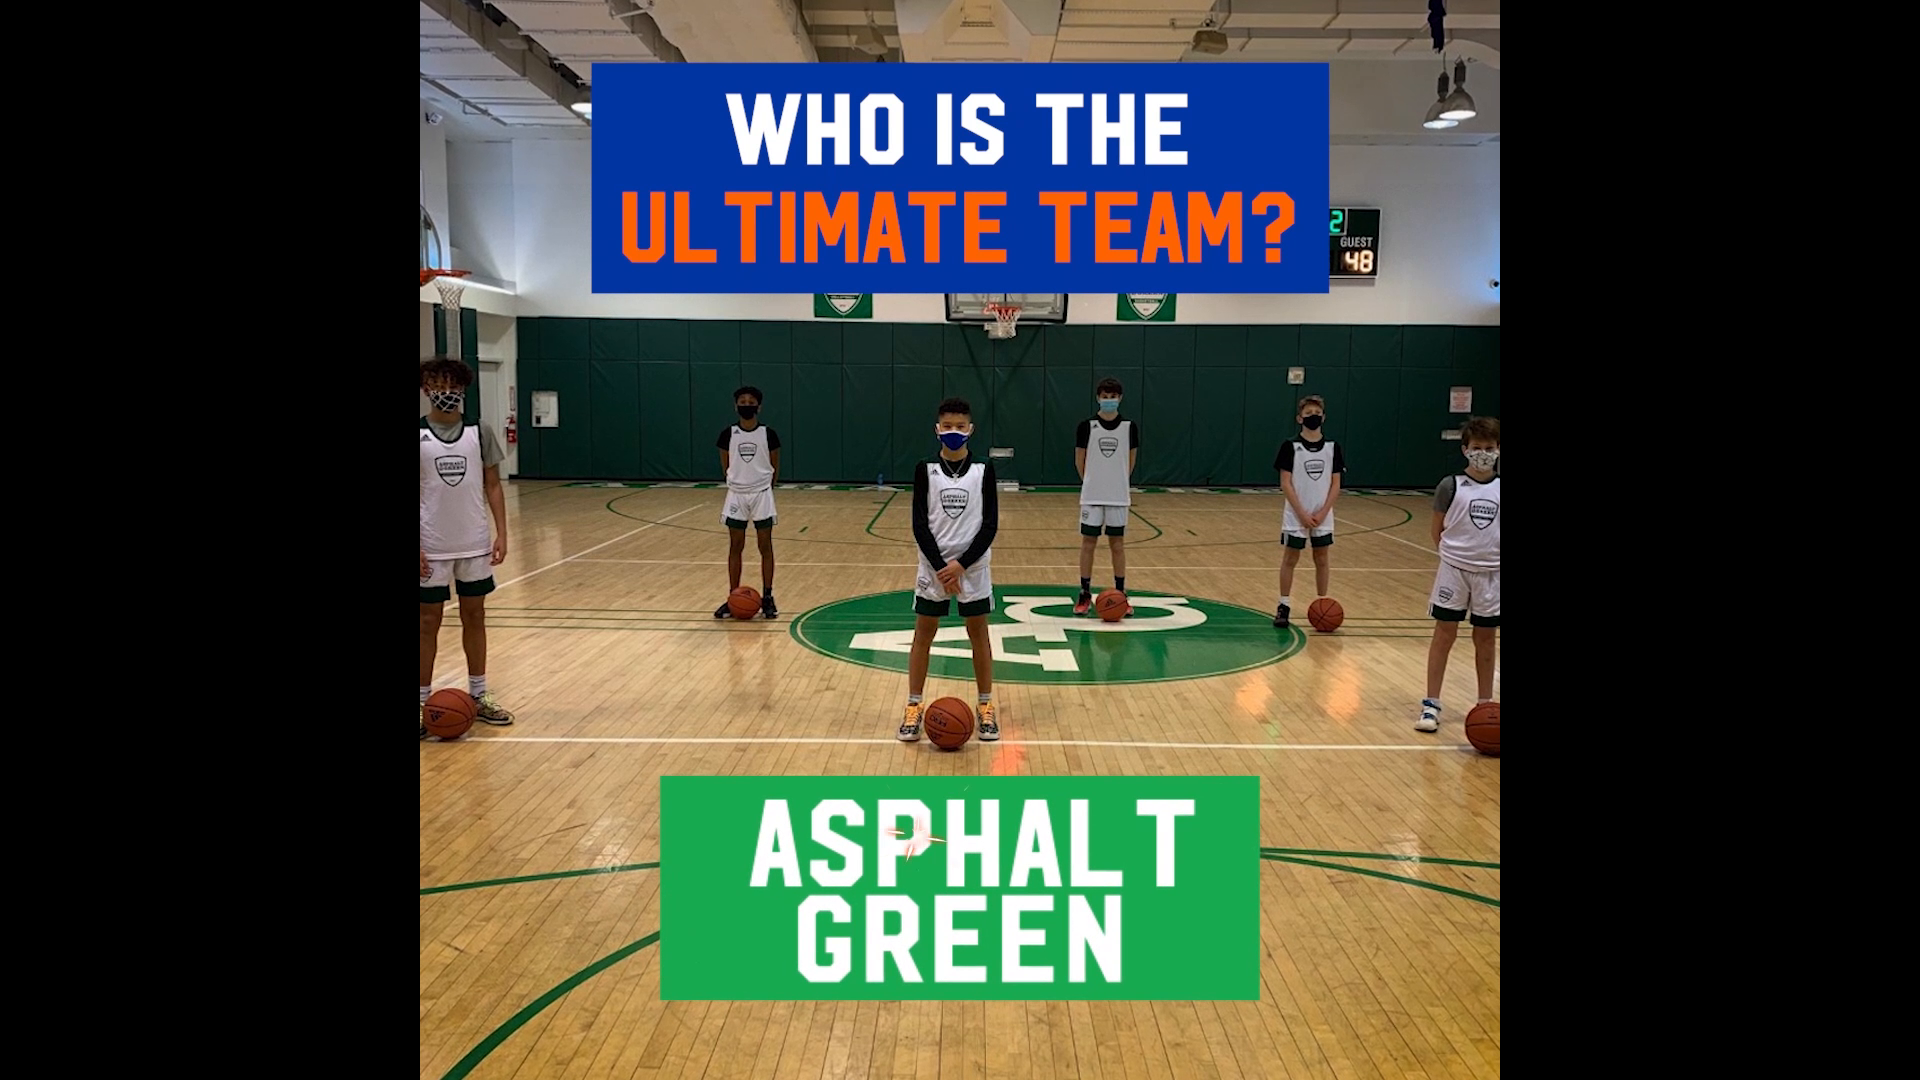 THE JR. KNICKS ARE PROUD TO ANNOUNCE THE WINNER OF THE ULTIMATE TEAM CONTEST: NEW YORK'S OWN, ASPHALT GREEN!